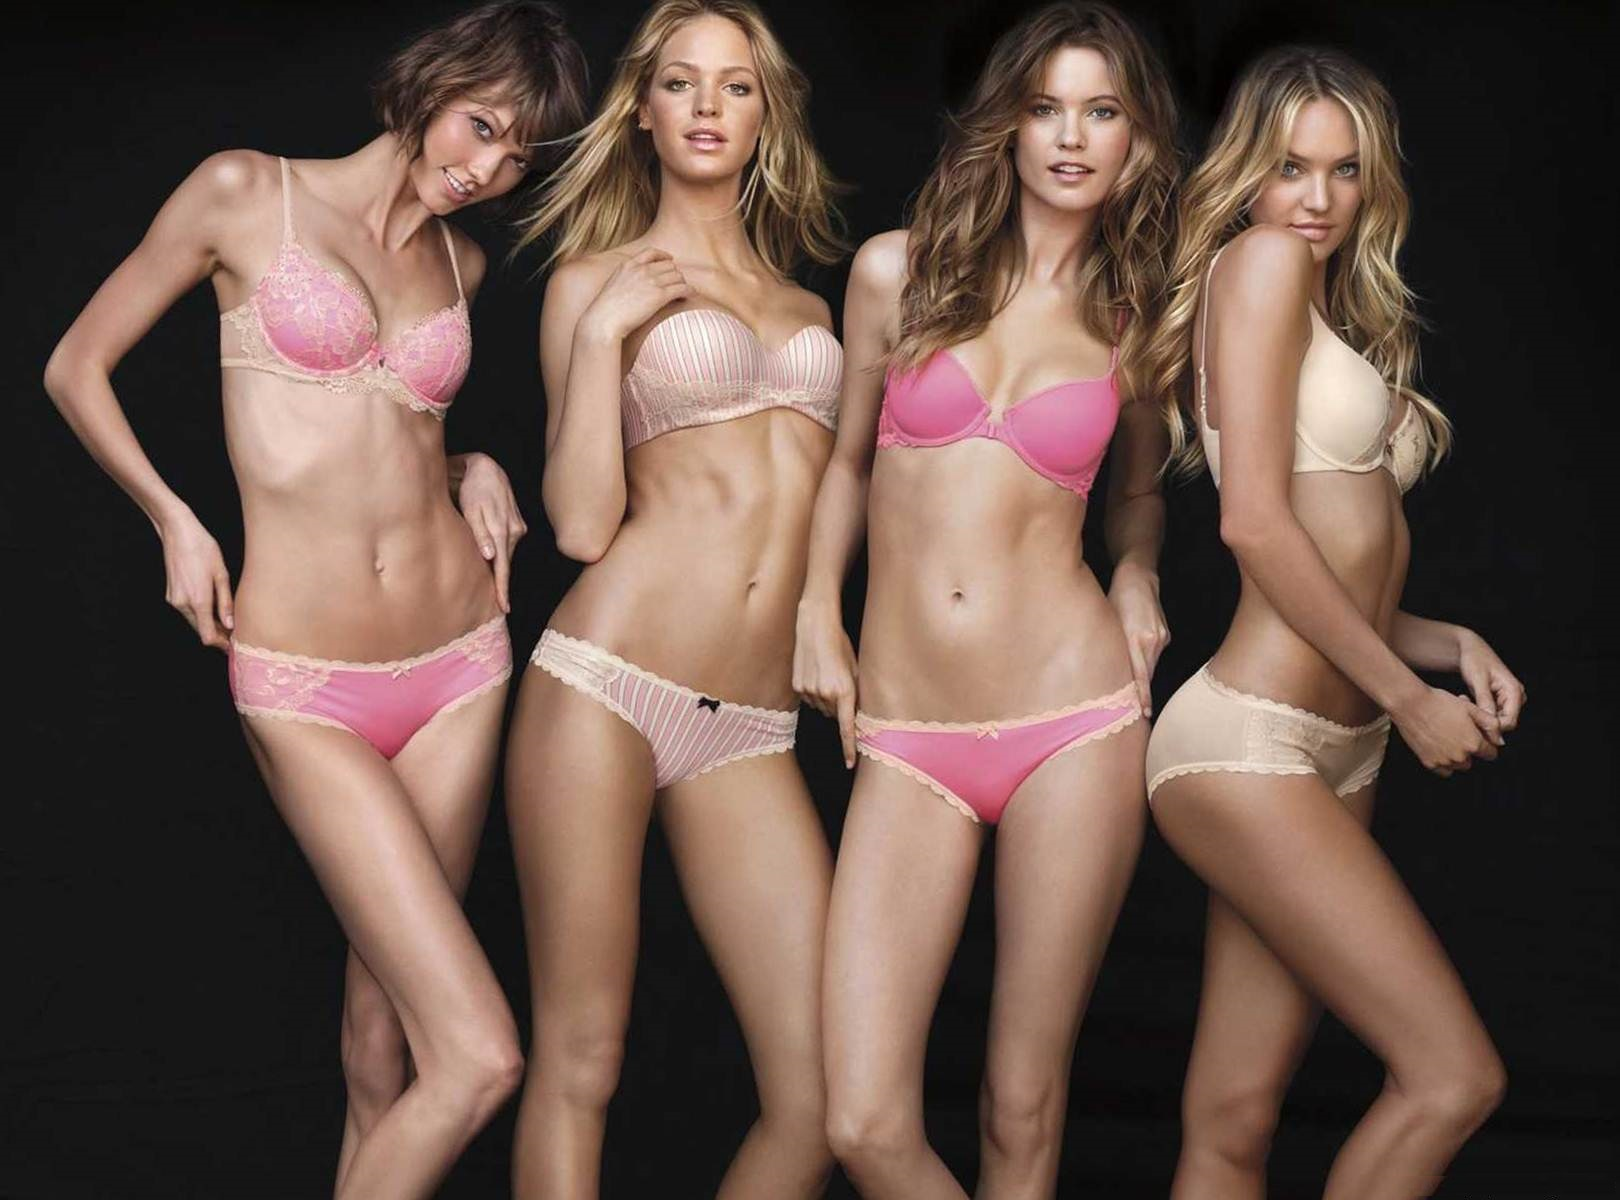 Victoria's Secret Fashion Show 2014 bras wallpaper